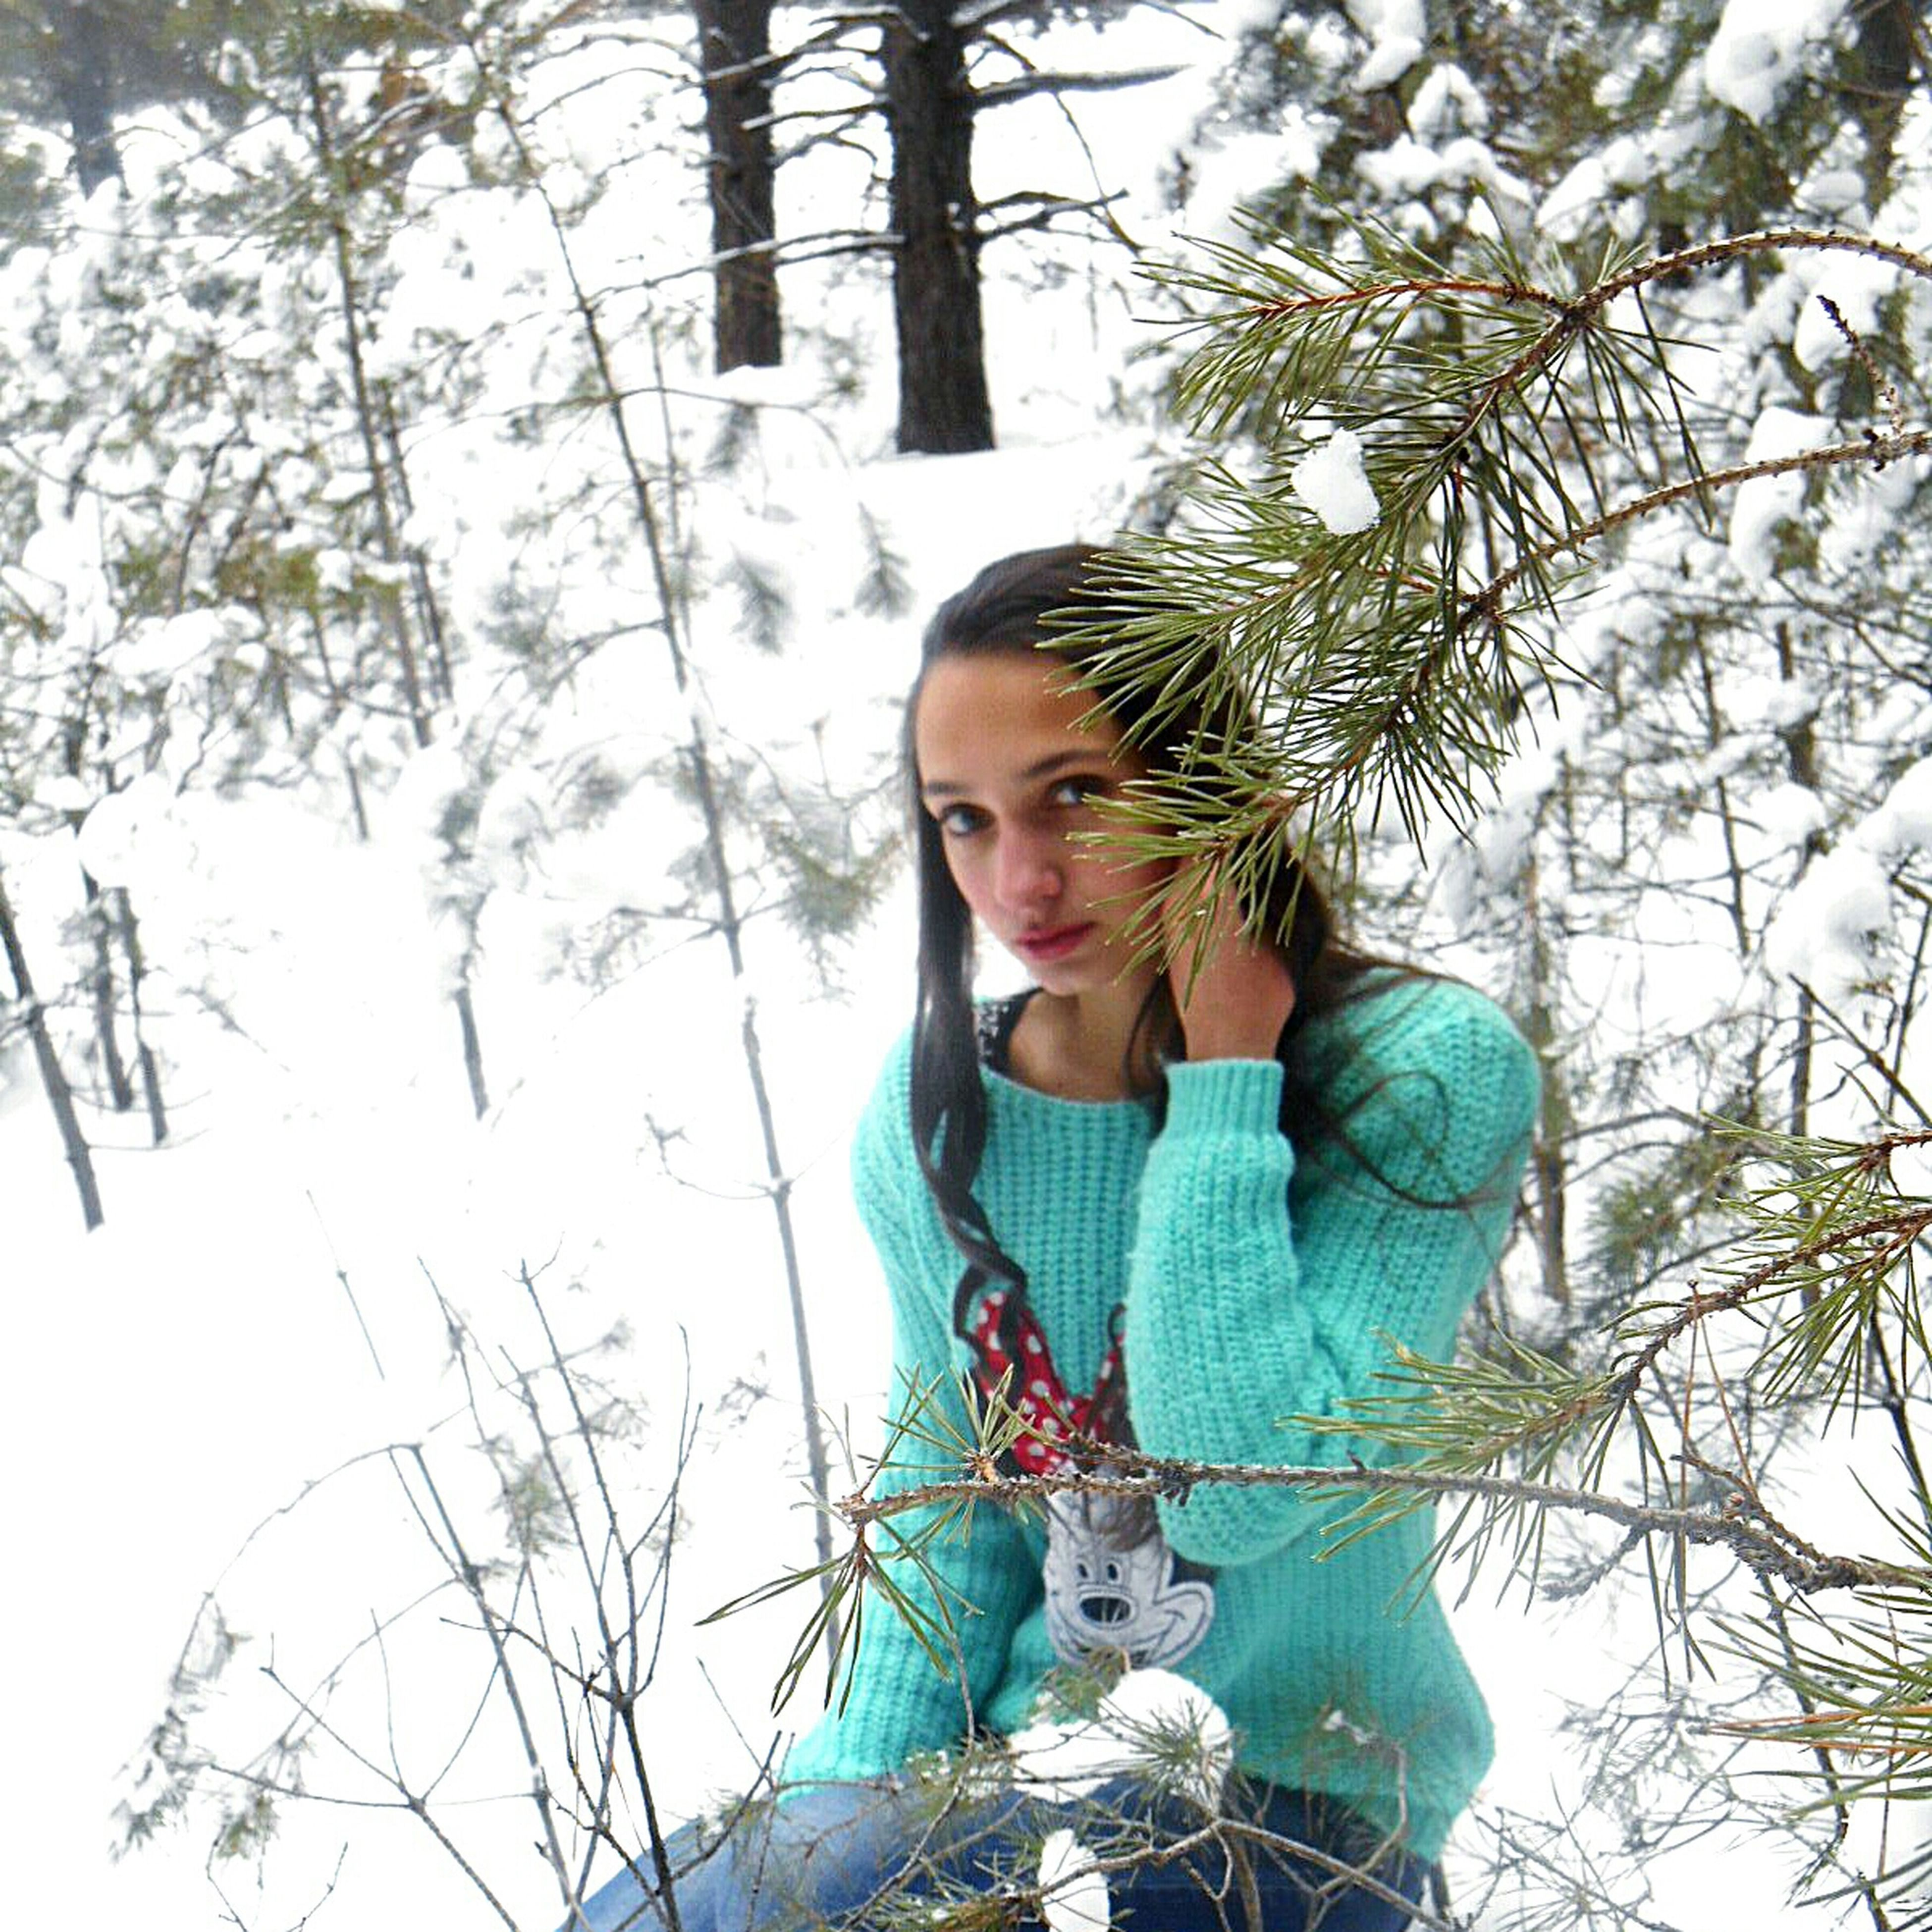 contemplation, tree, young adult, one person, long hair, portrait, beauty, one woman only, leisure activity, cold temperature, young women, adults only, only women, lifestyles, day, beautiful woman, people, outdoors, winter, nature, adult, snow, one young woman only, human body part